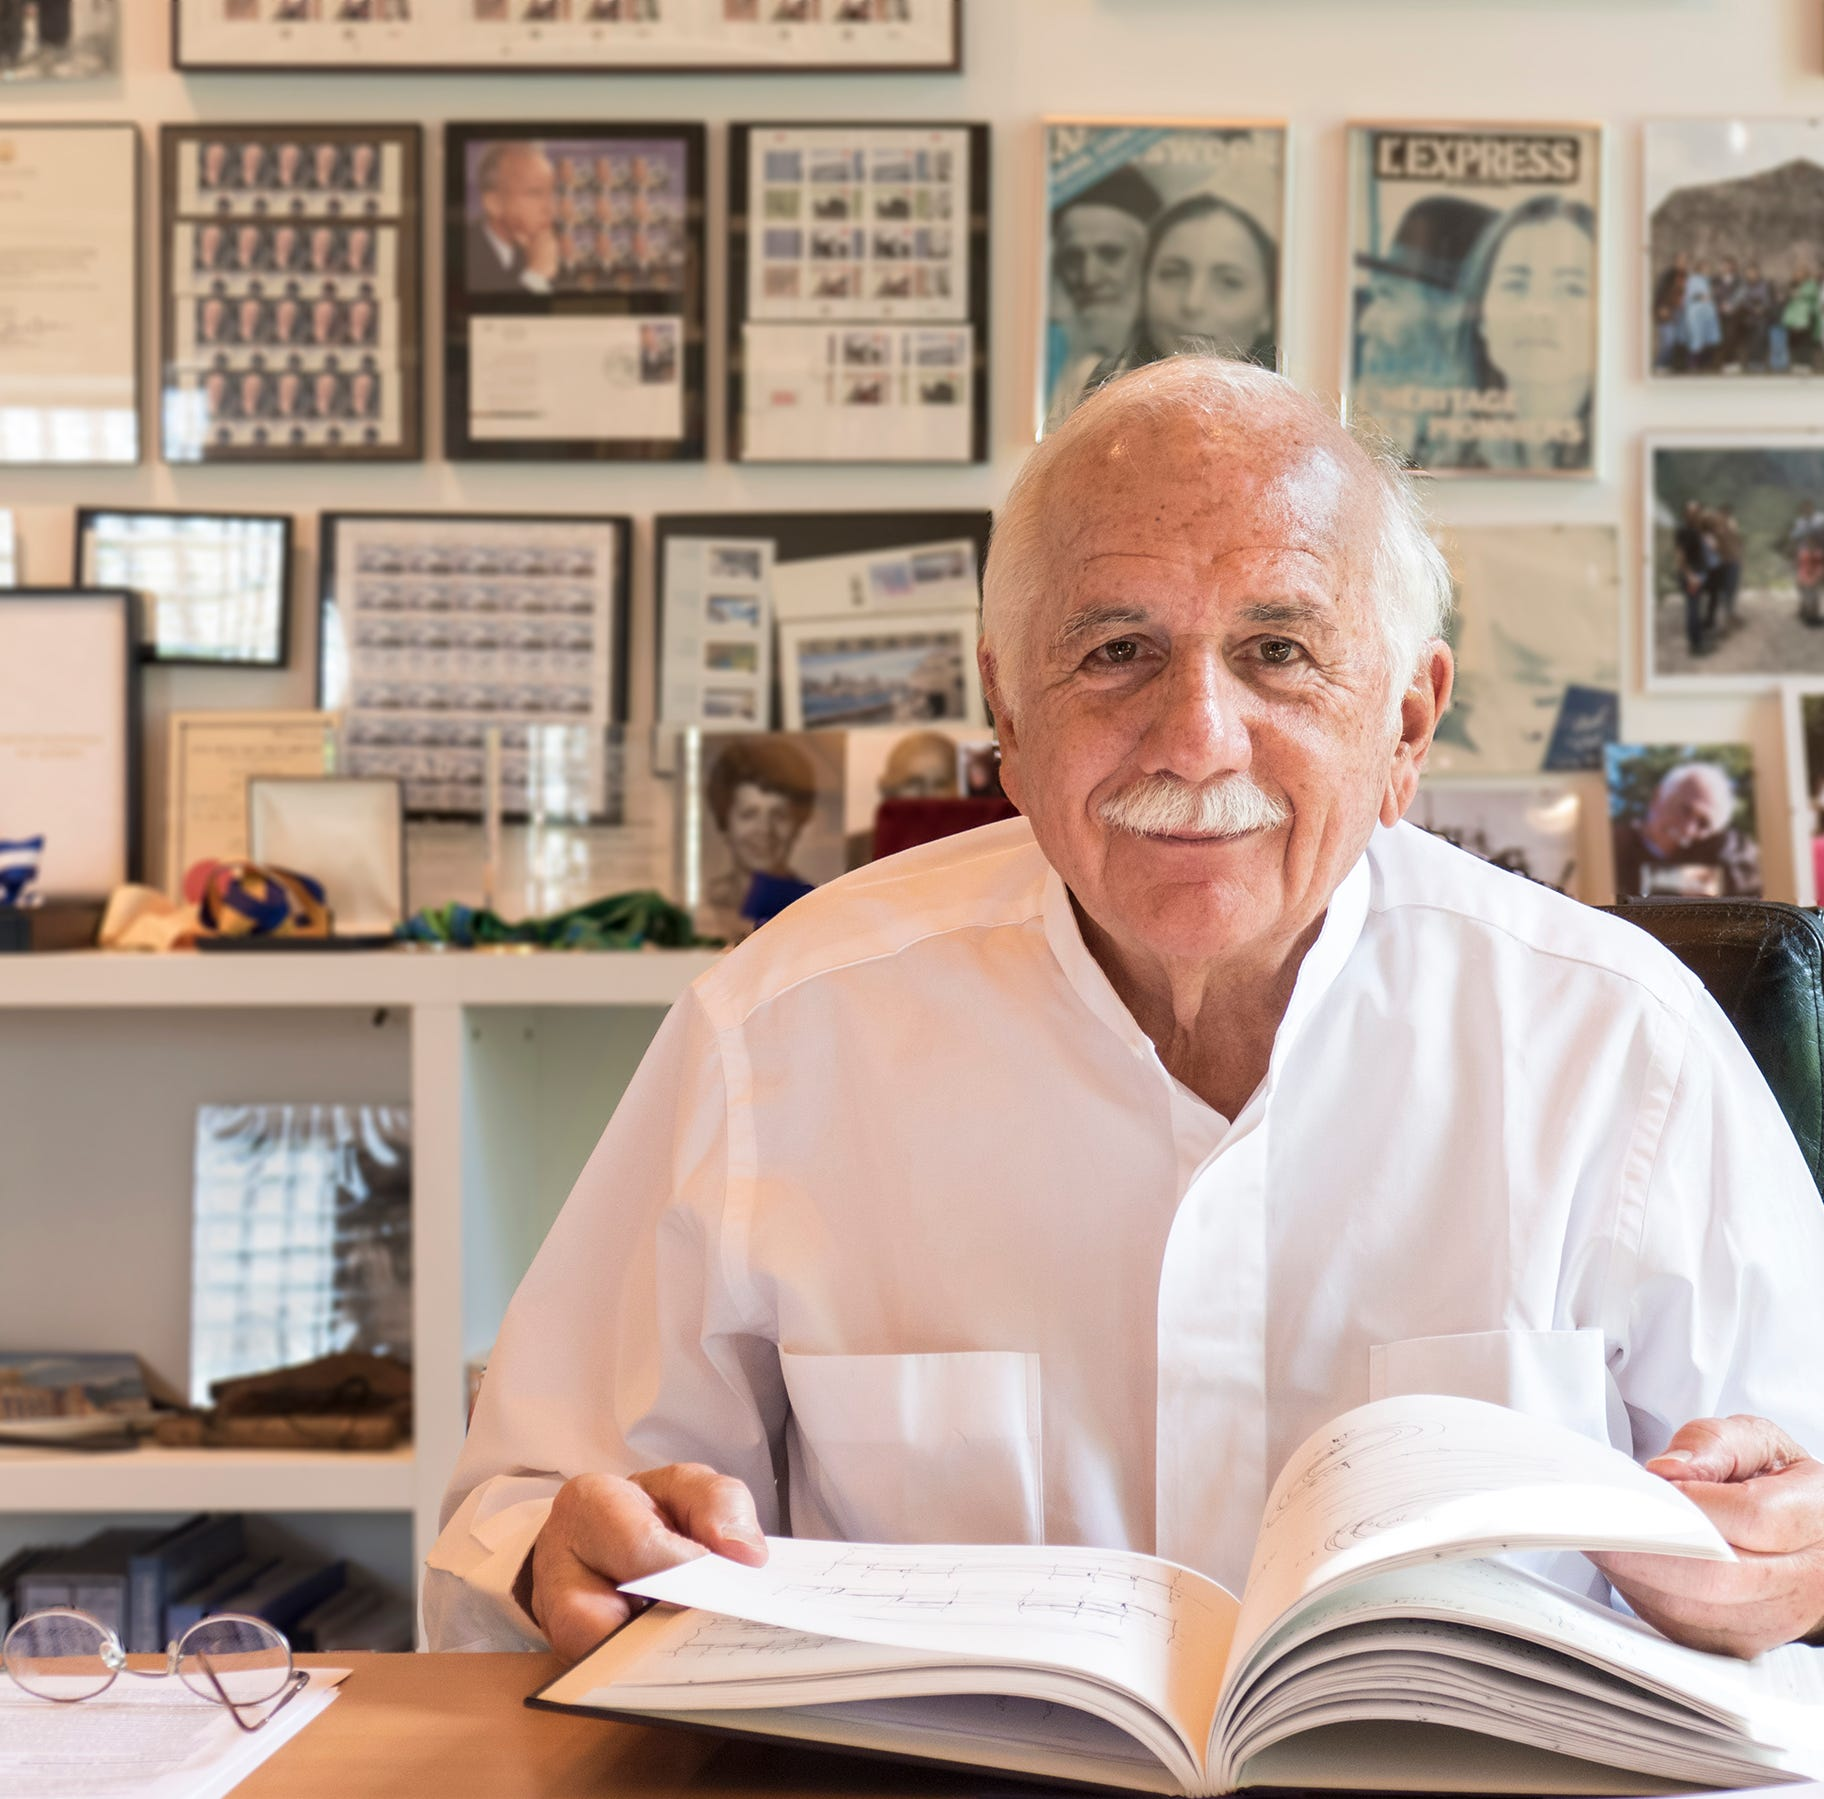 Modernism Week 2019: Architect Moshe Safdie says ideas behind Habitat '67 have 'come full circle'